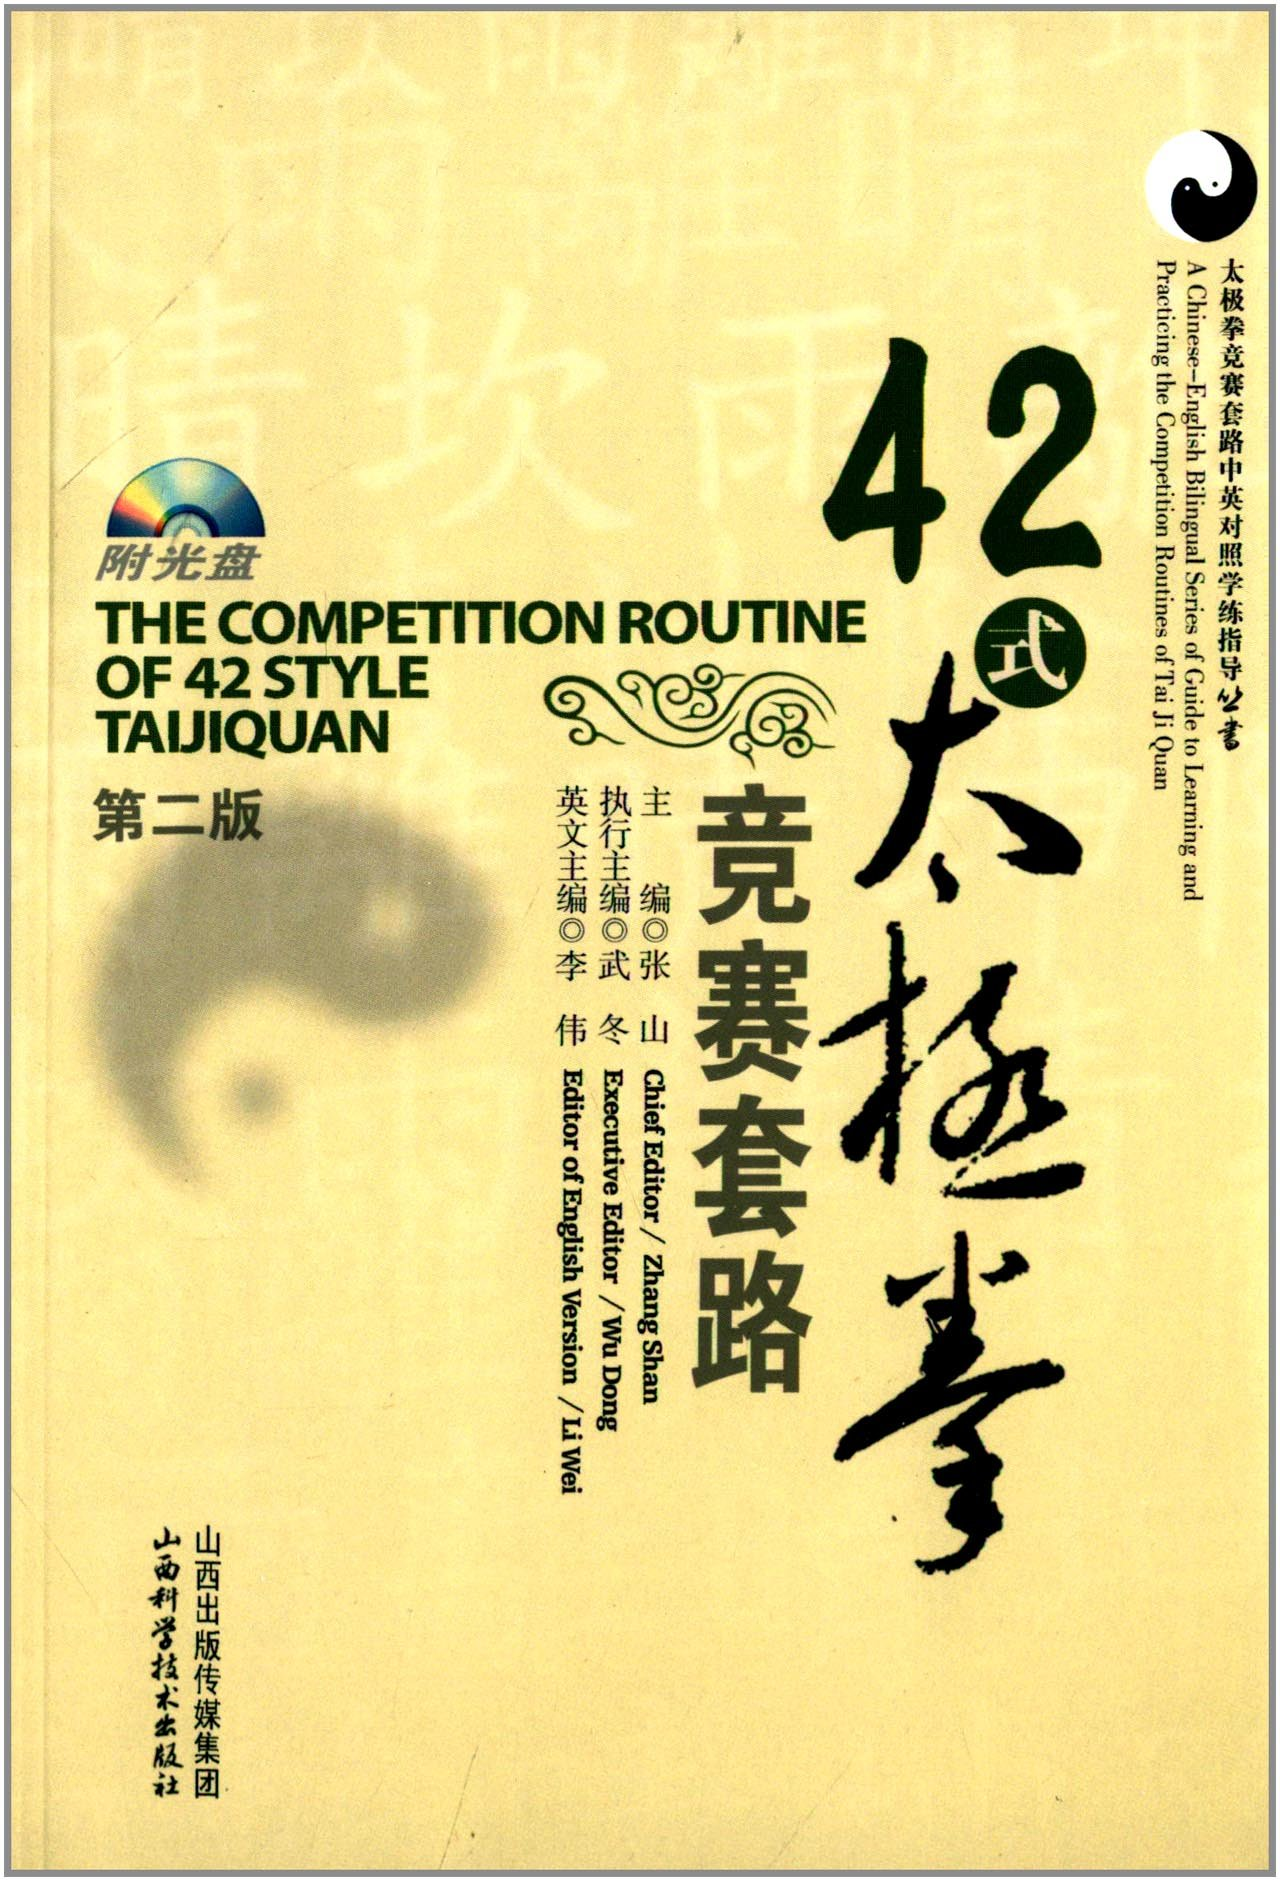 The Competition Routine of 42 Style Taijiquan